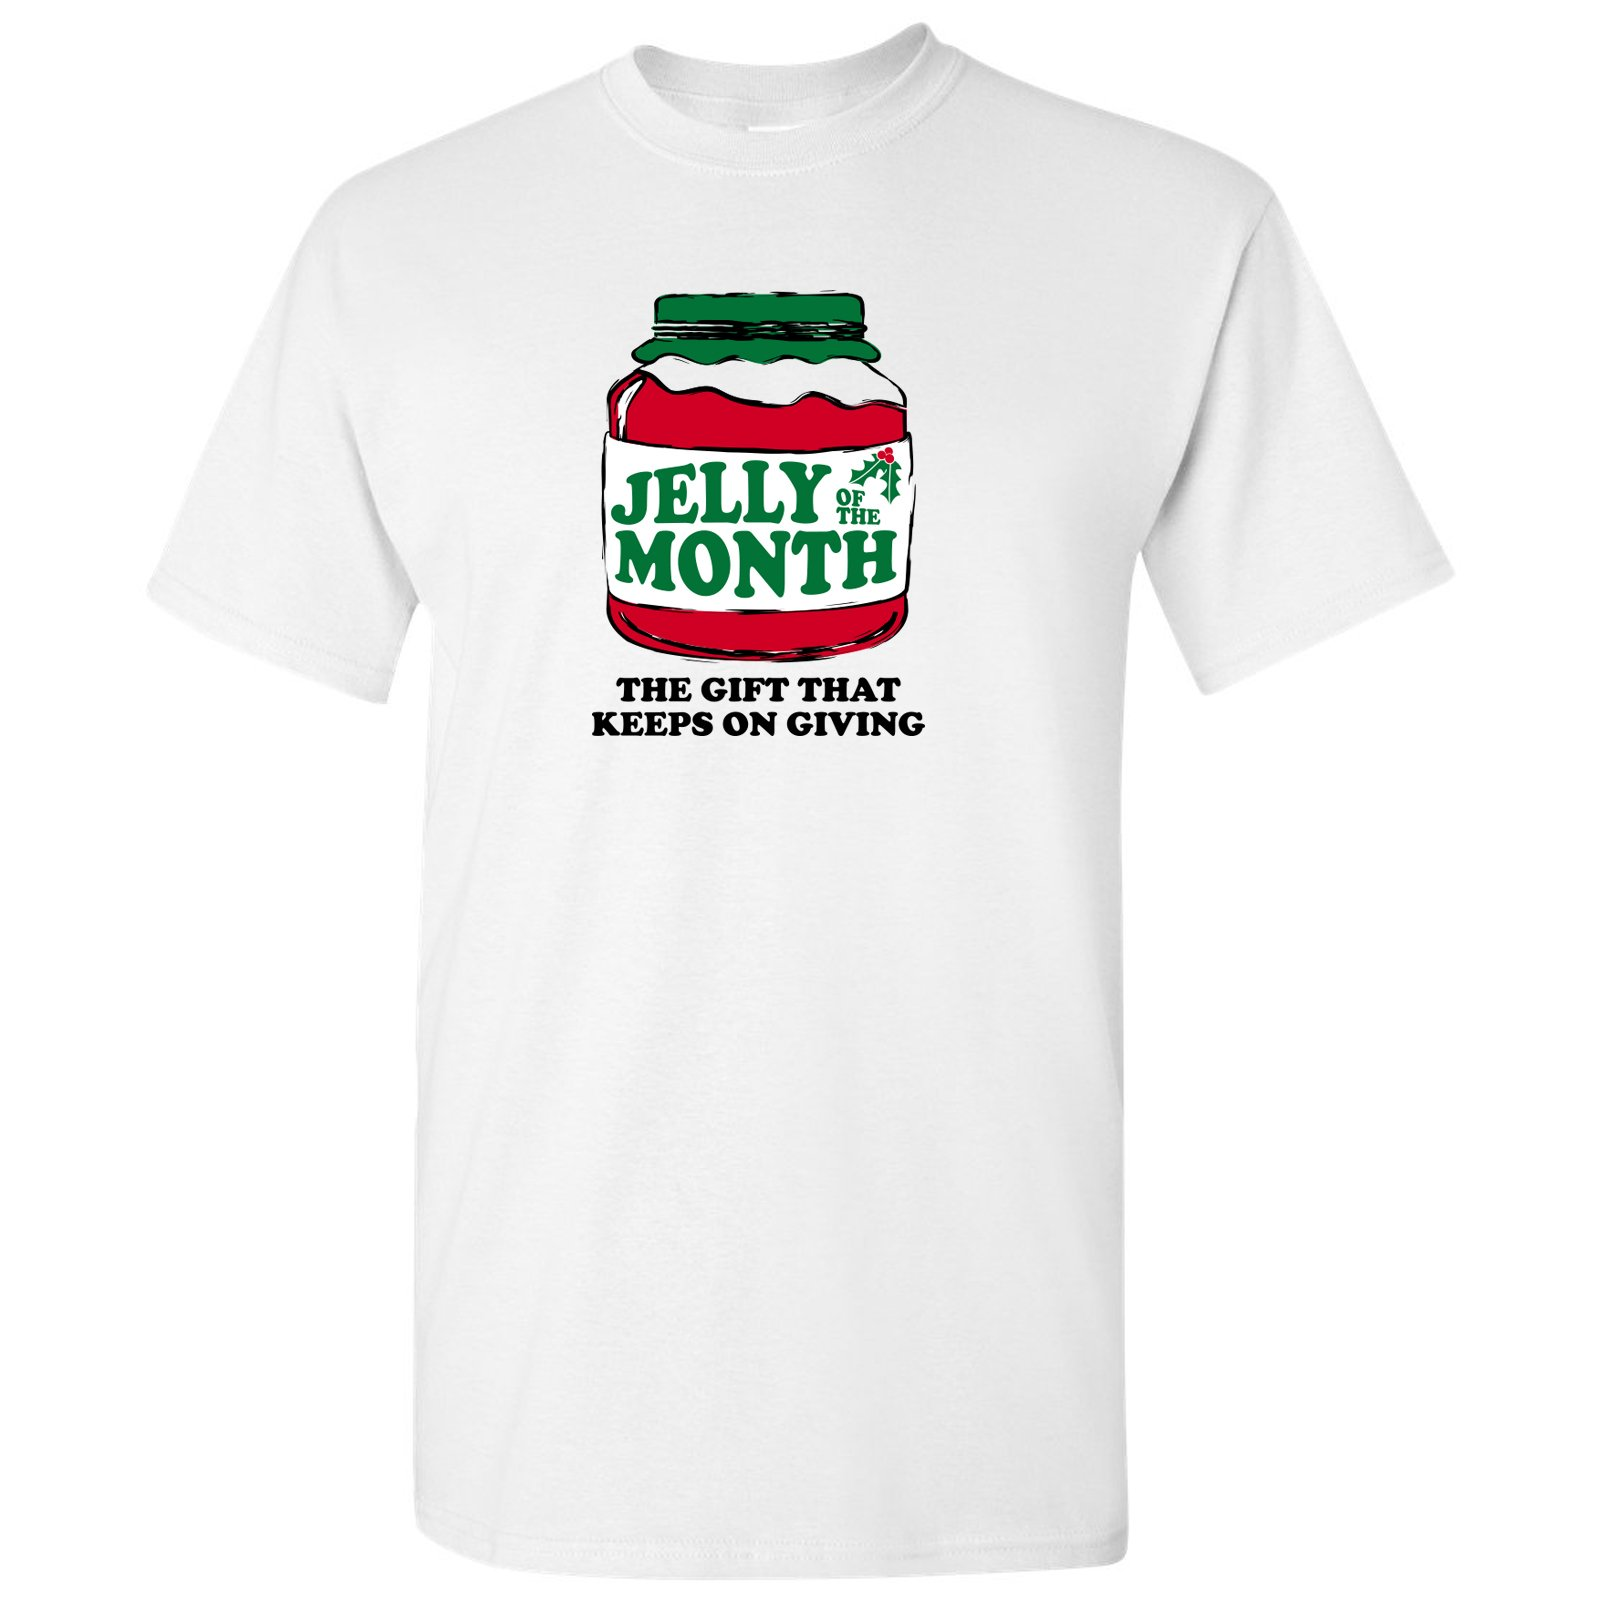 Jelly of The Month Club, The Gift That Keeps On Giving - Funny Christmas Movie T Shirt